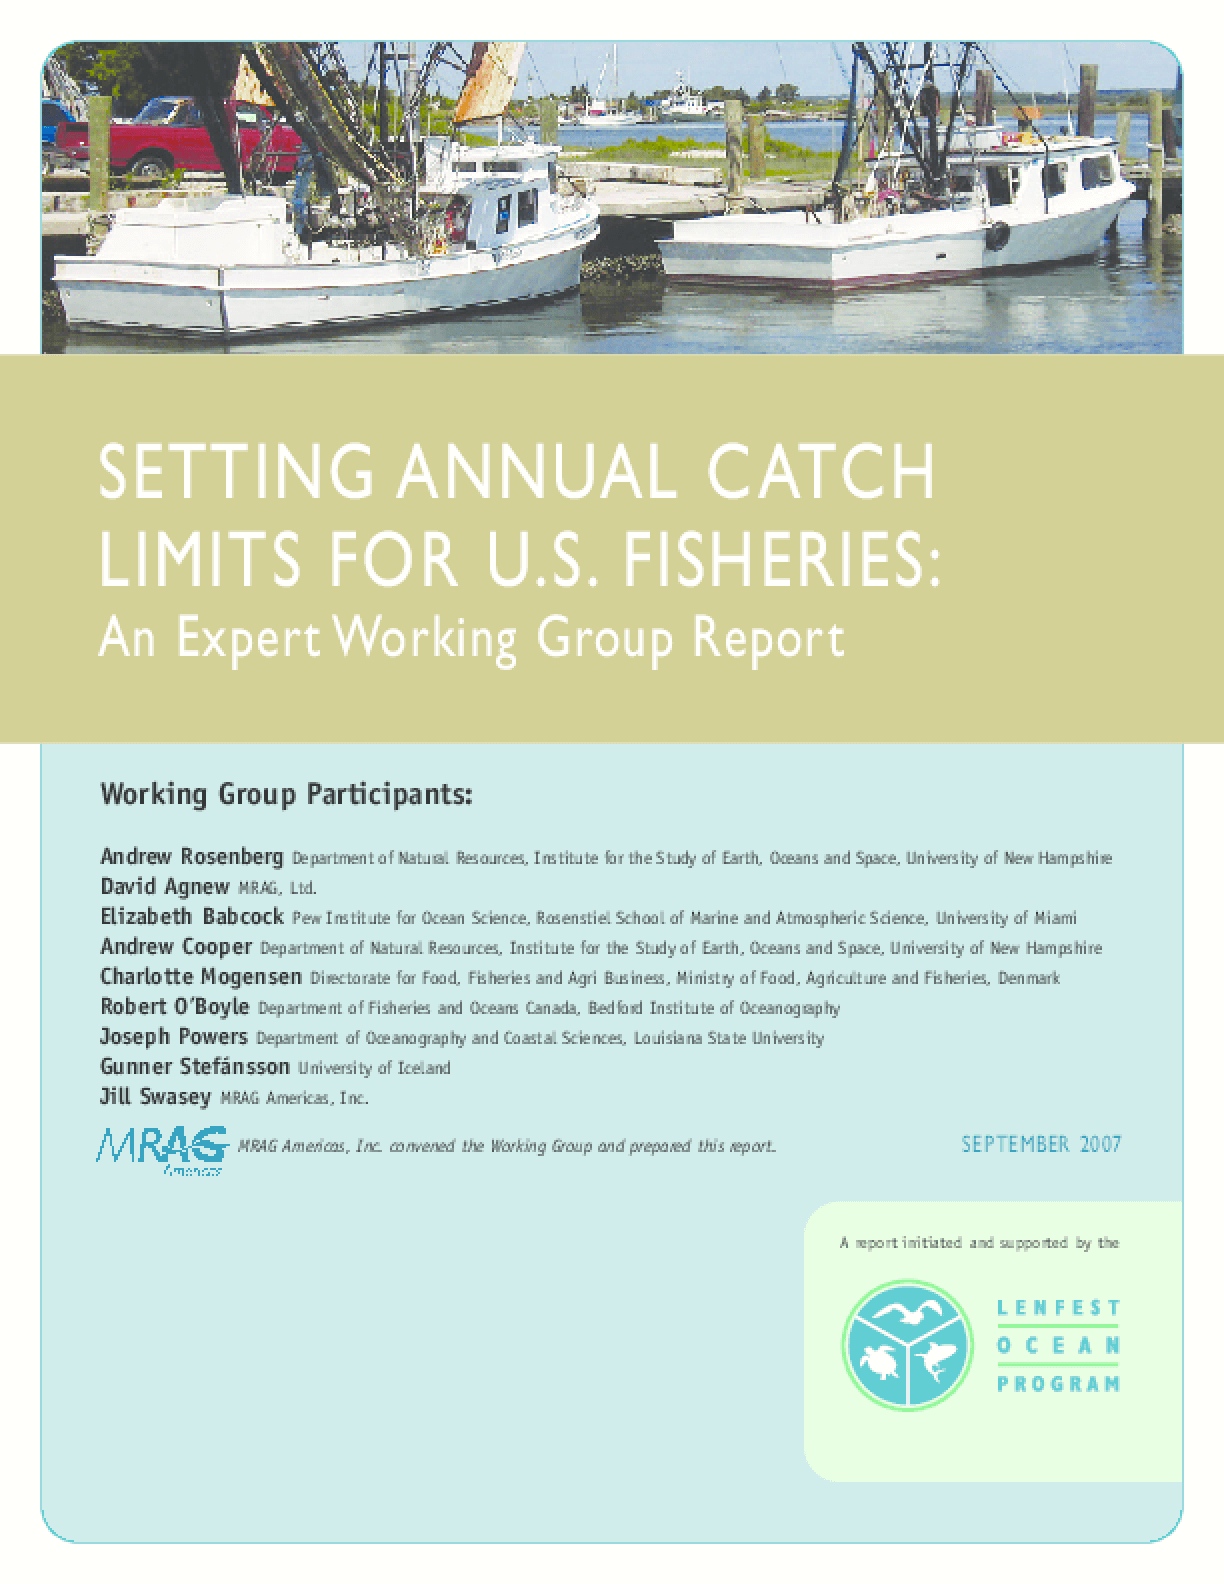 Setting Annual Catch Limits for U.S. Fisheries: An Expert Working Group Report